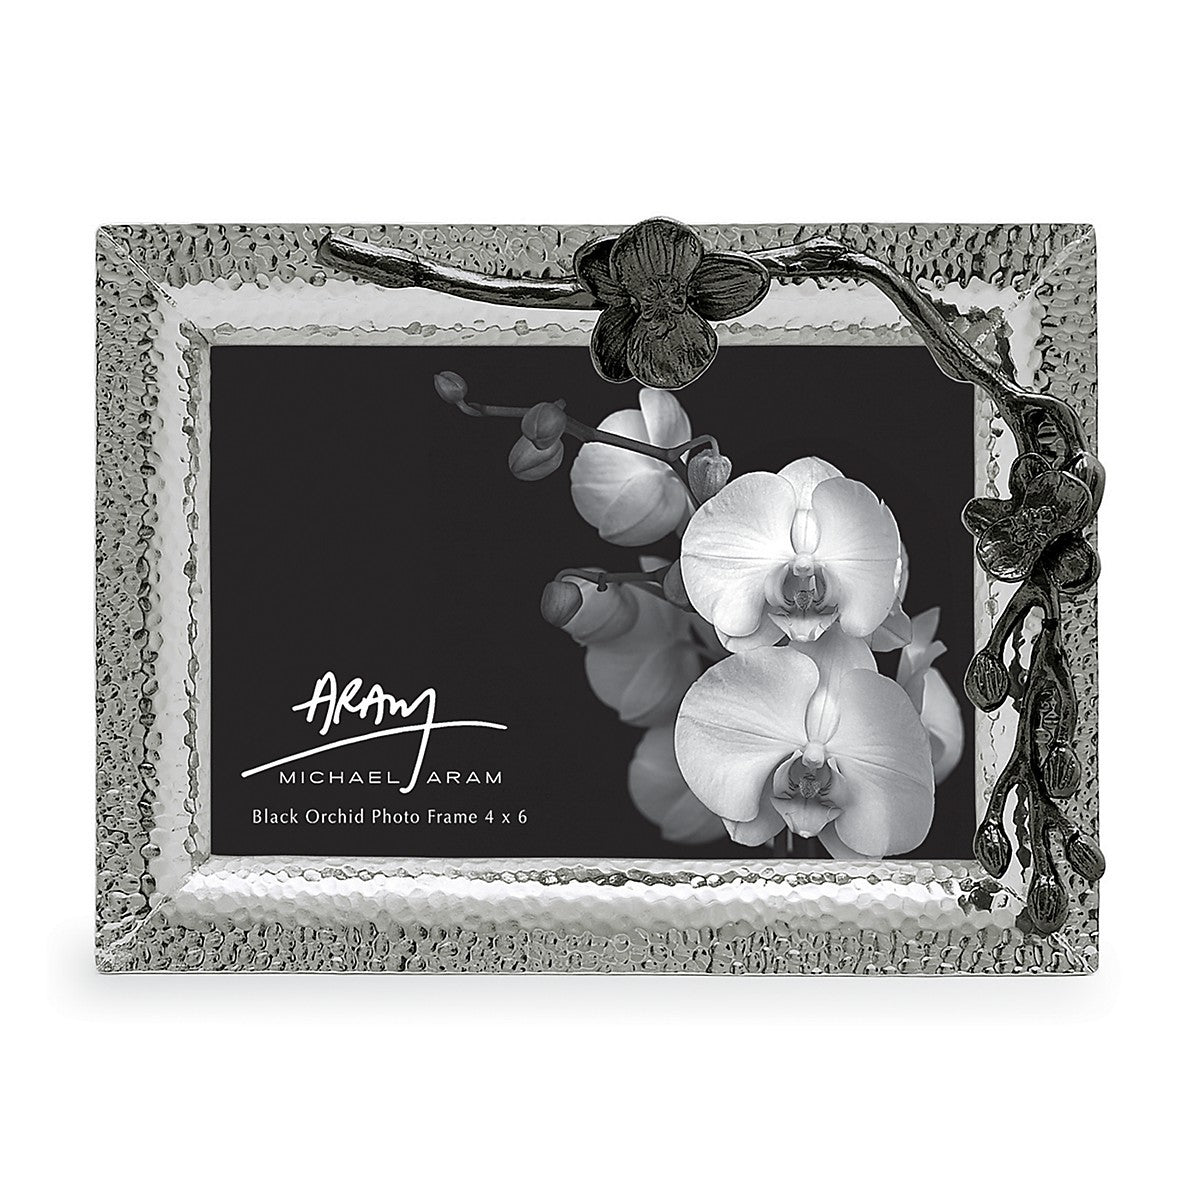 Black Orchid Frame 4 x 6